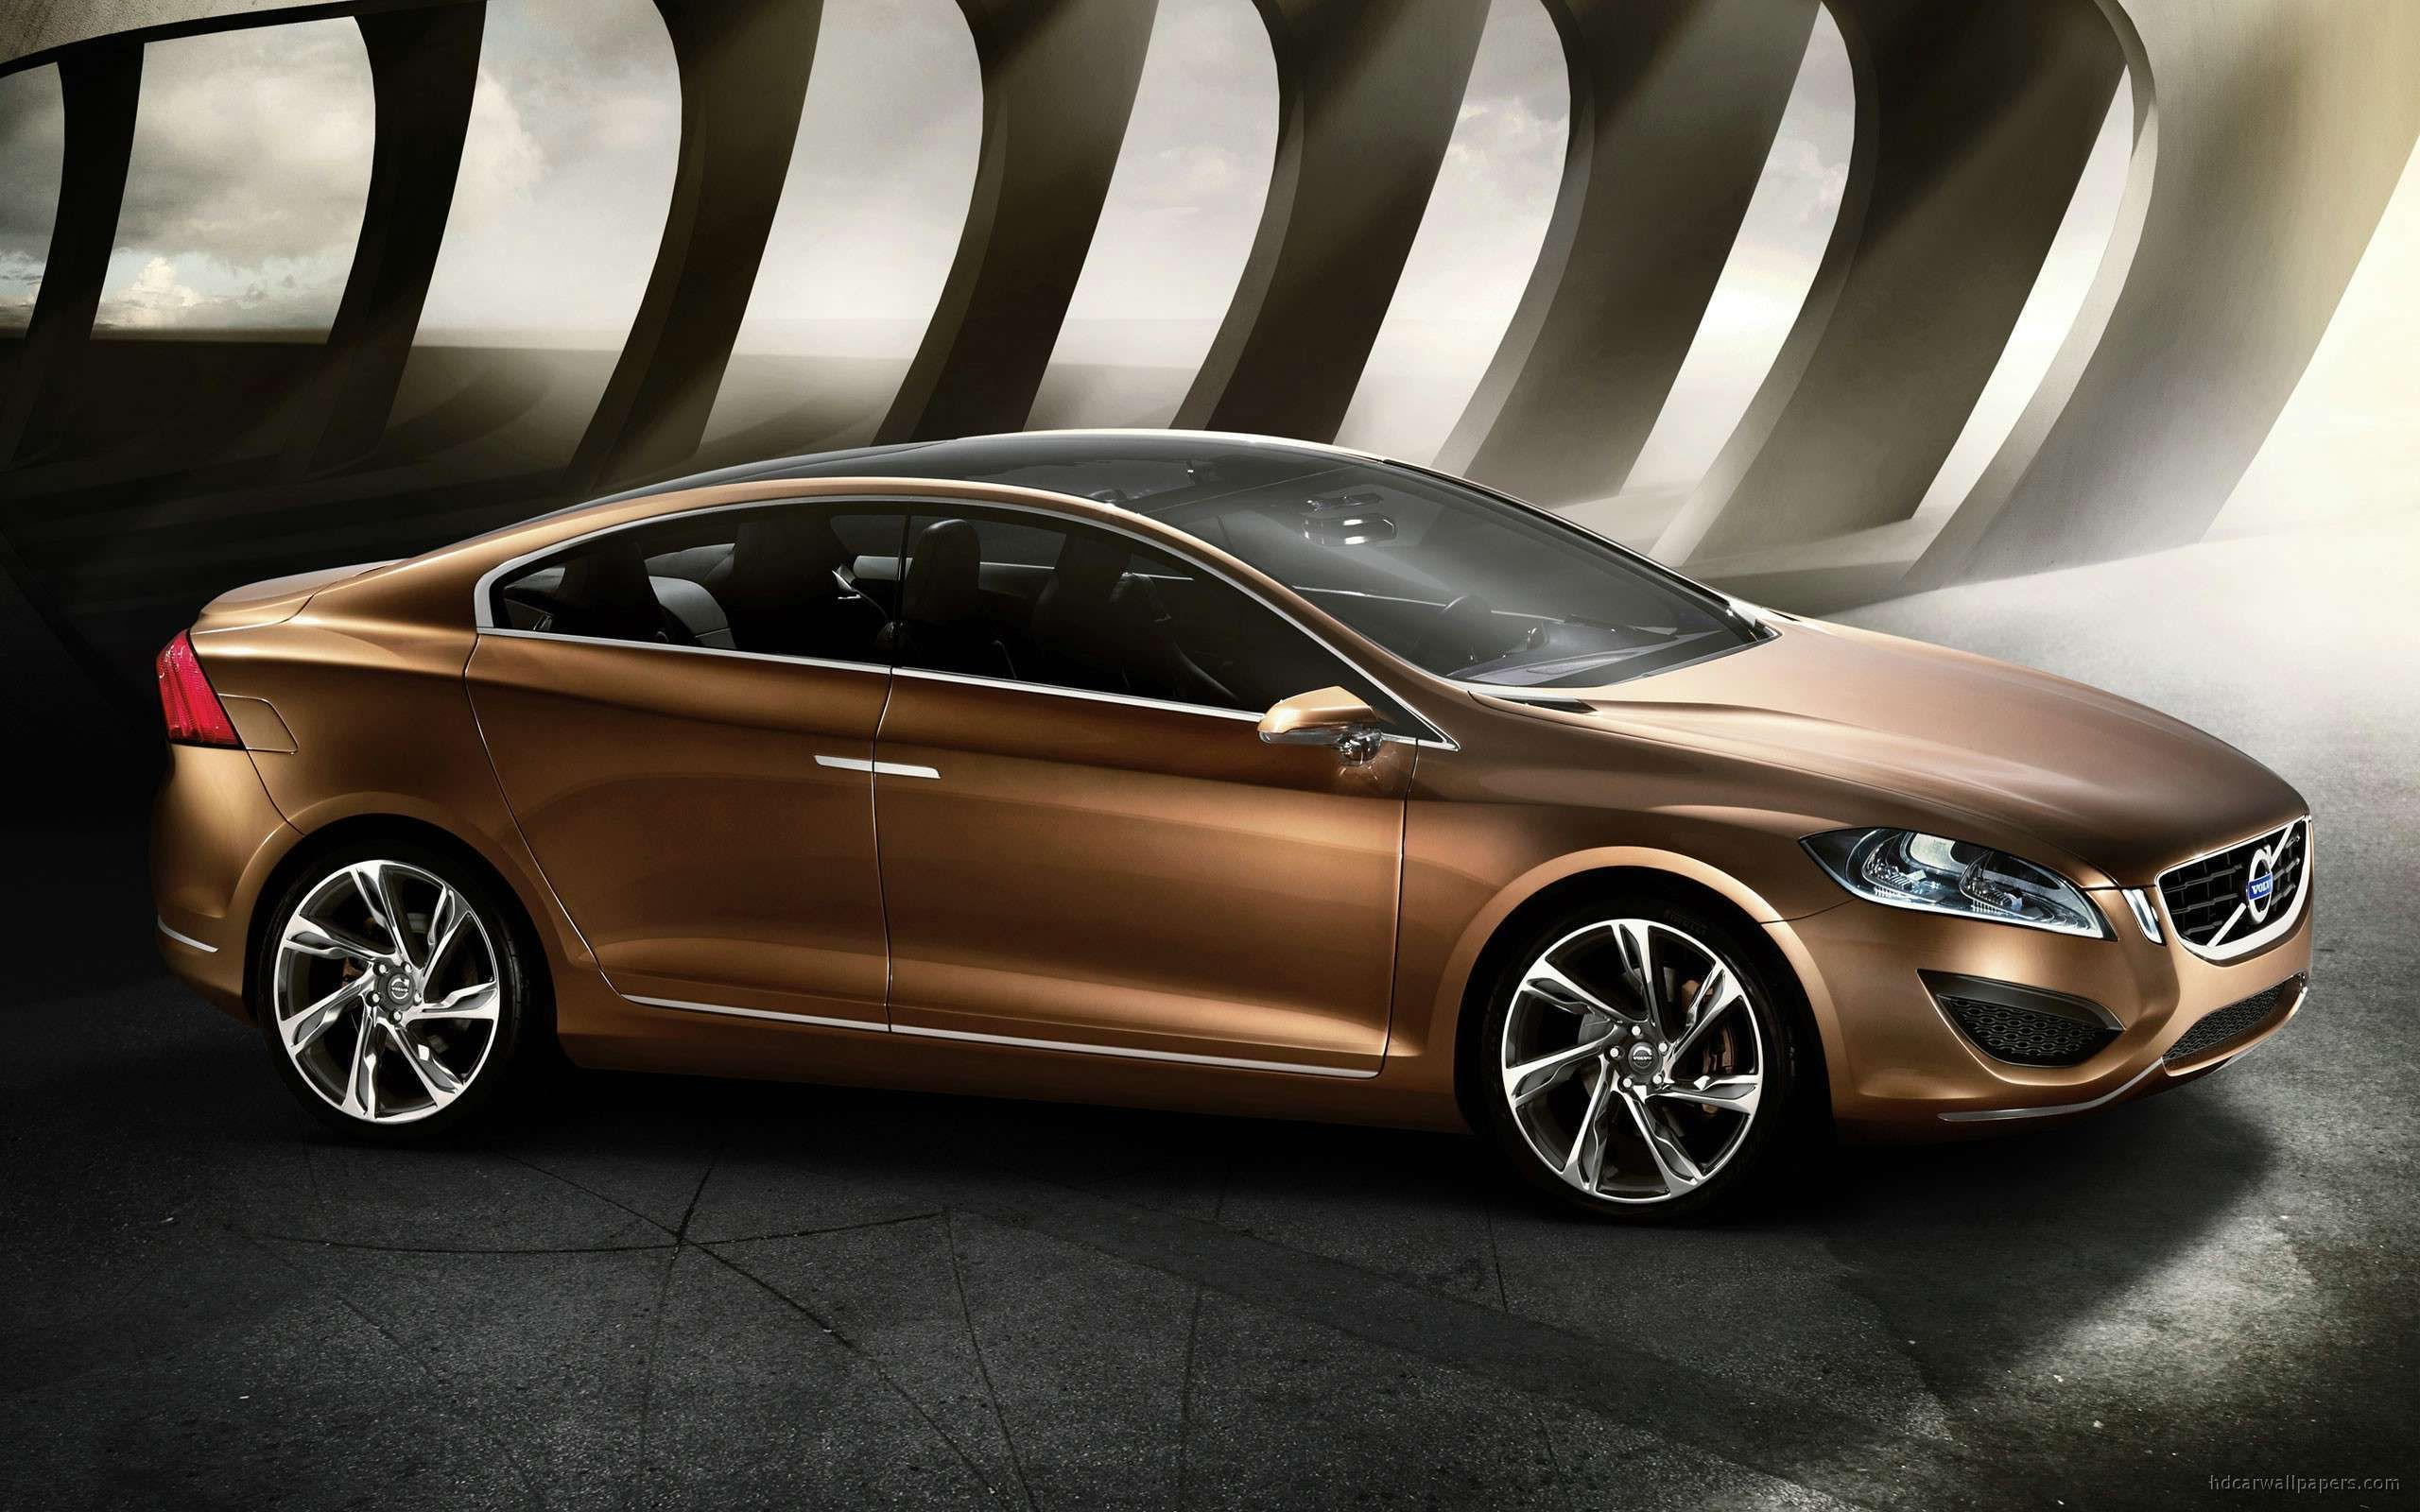 Volvo S60 Concept 2010 Hd Wallpapers Hd Car Wallpapers Volvo S60 Car Hd Volvo